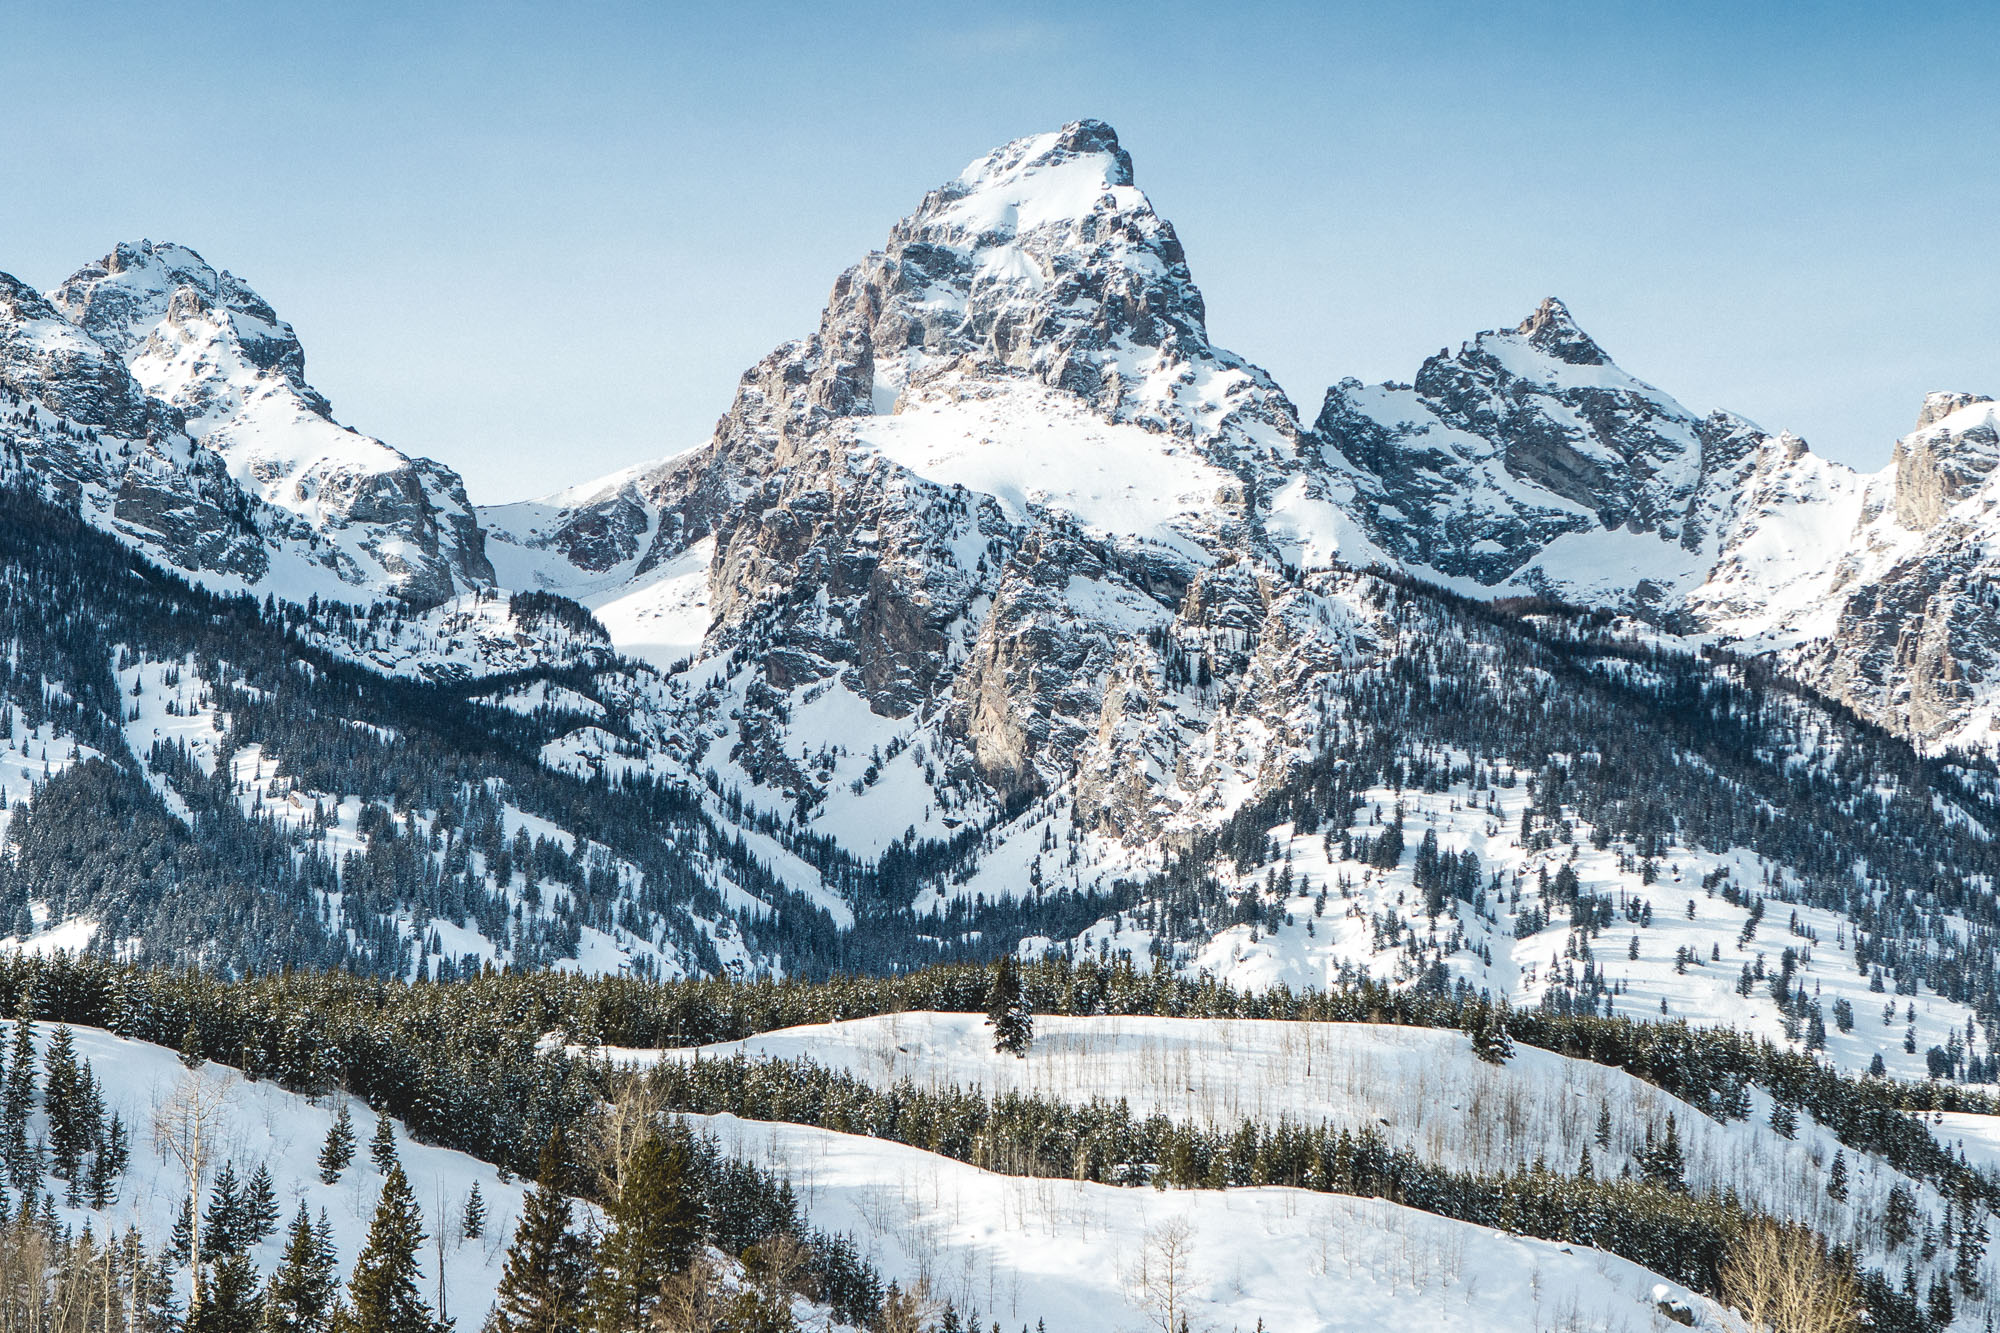 Grand Tetons with snow and blue skies